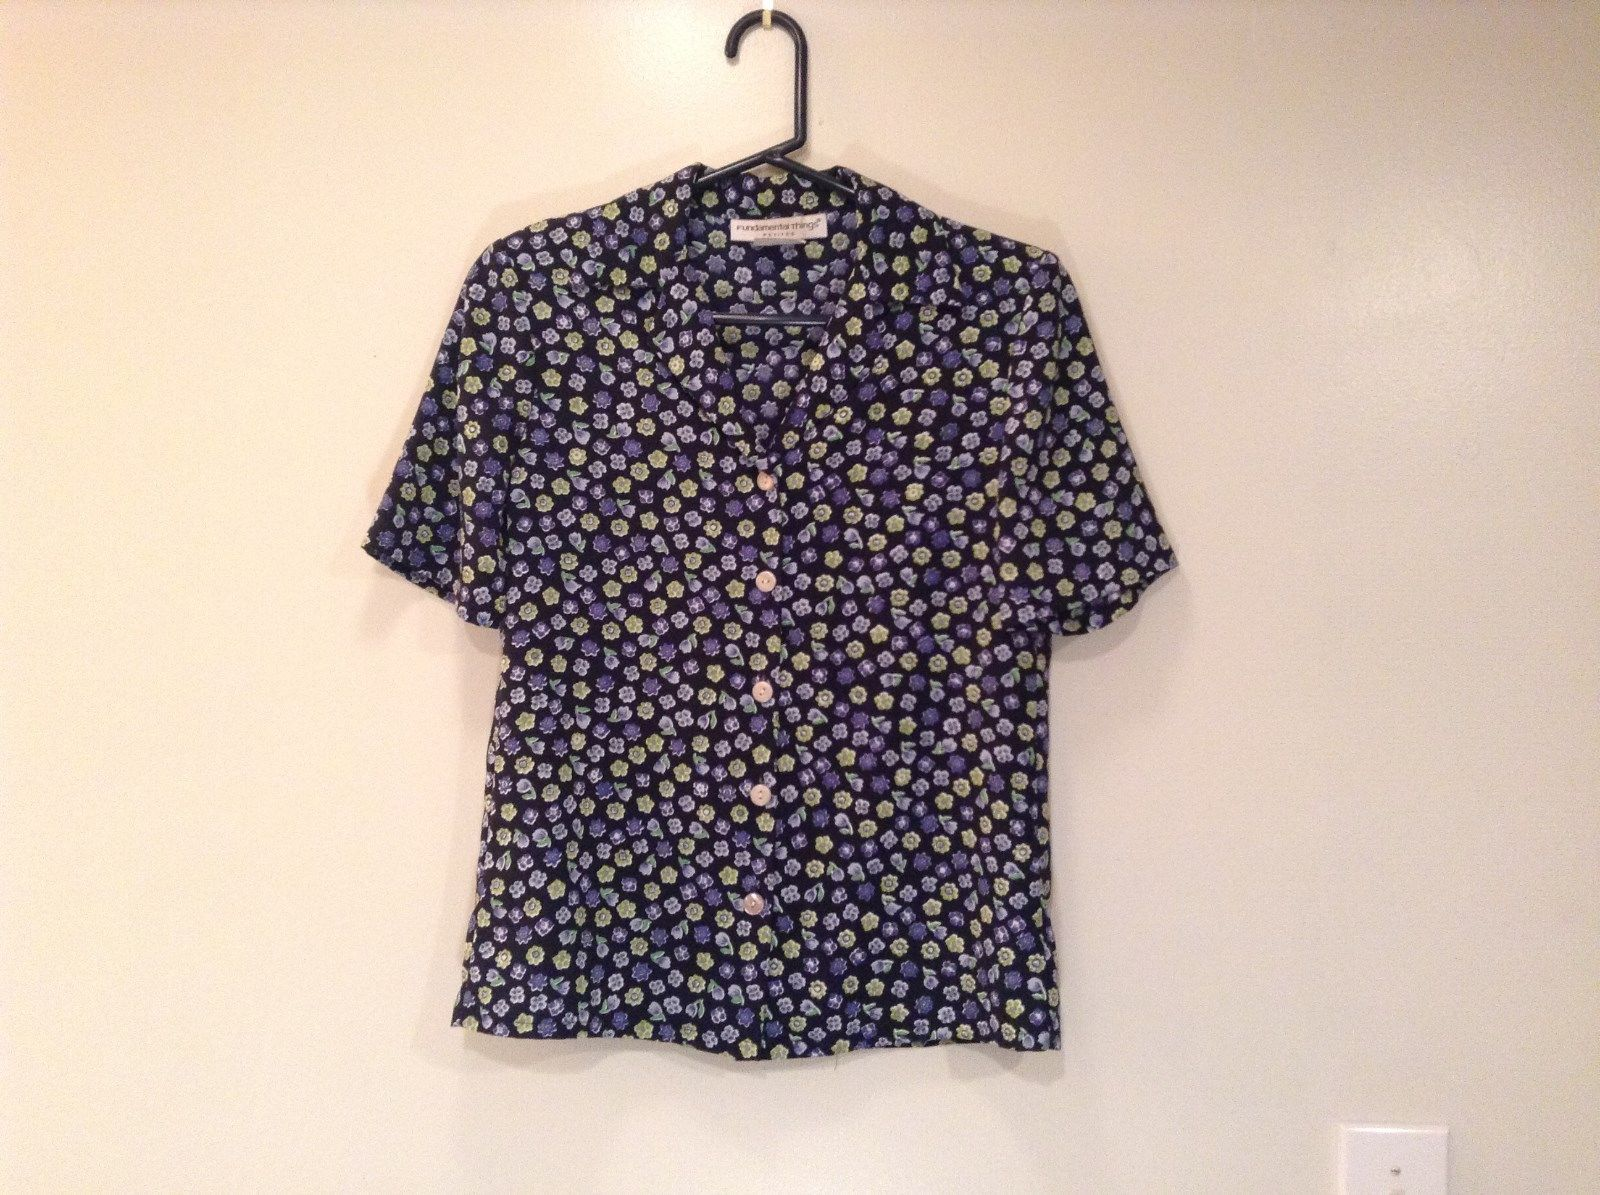 Black Floral Fundamental Things Petite Short Sleeve Button Up Blouse Size SP